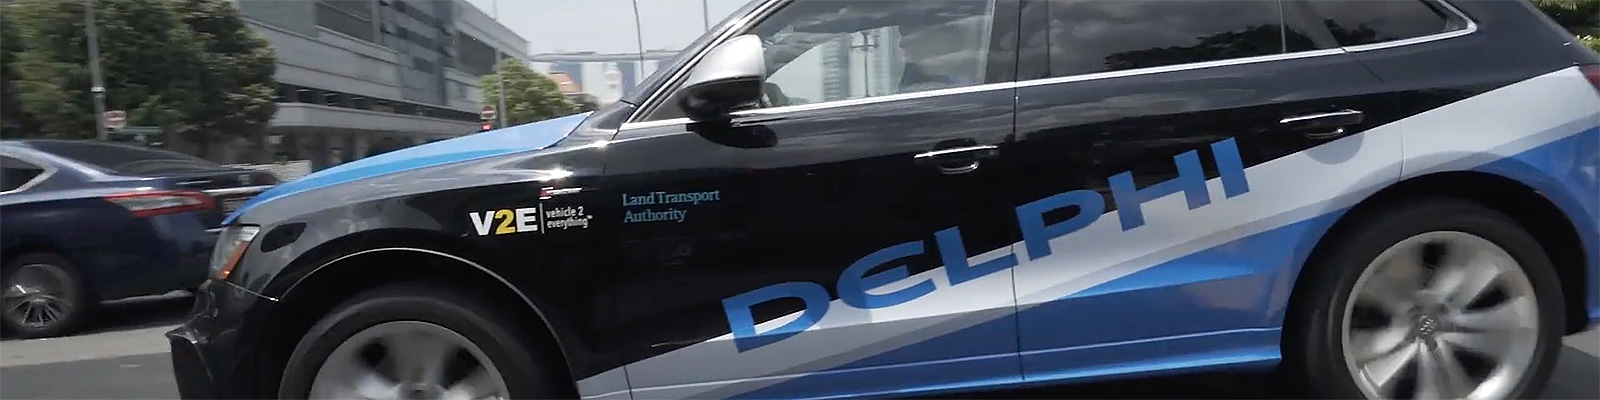 Delphi Announces Singapore Automated Pilot Test(Delphi Auto)